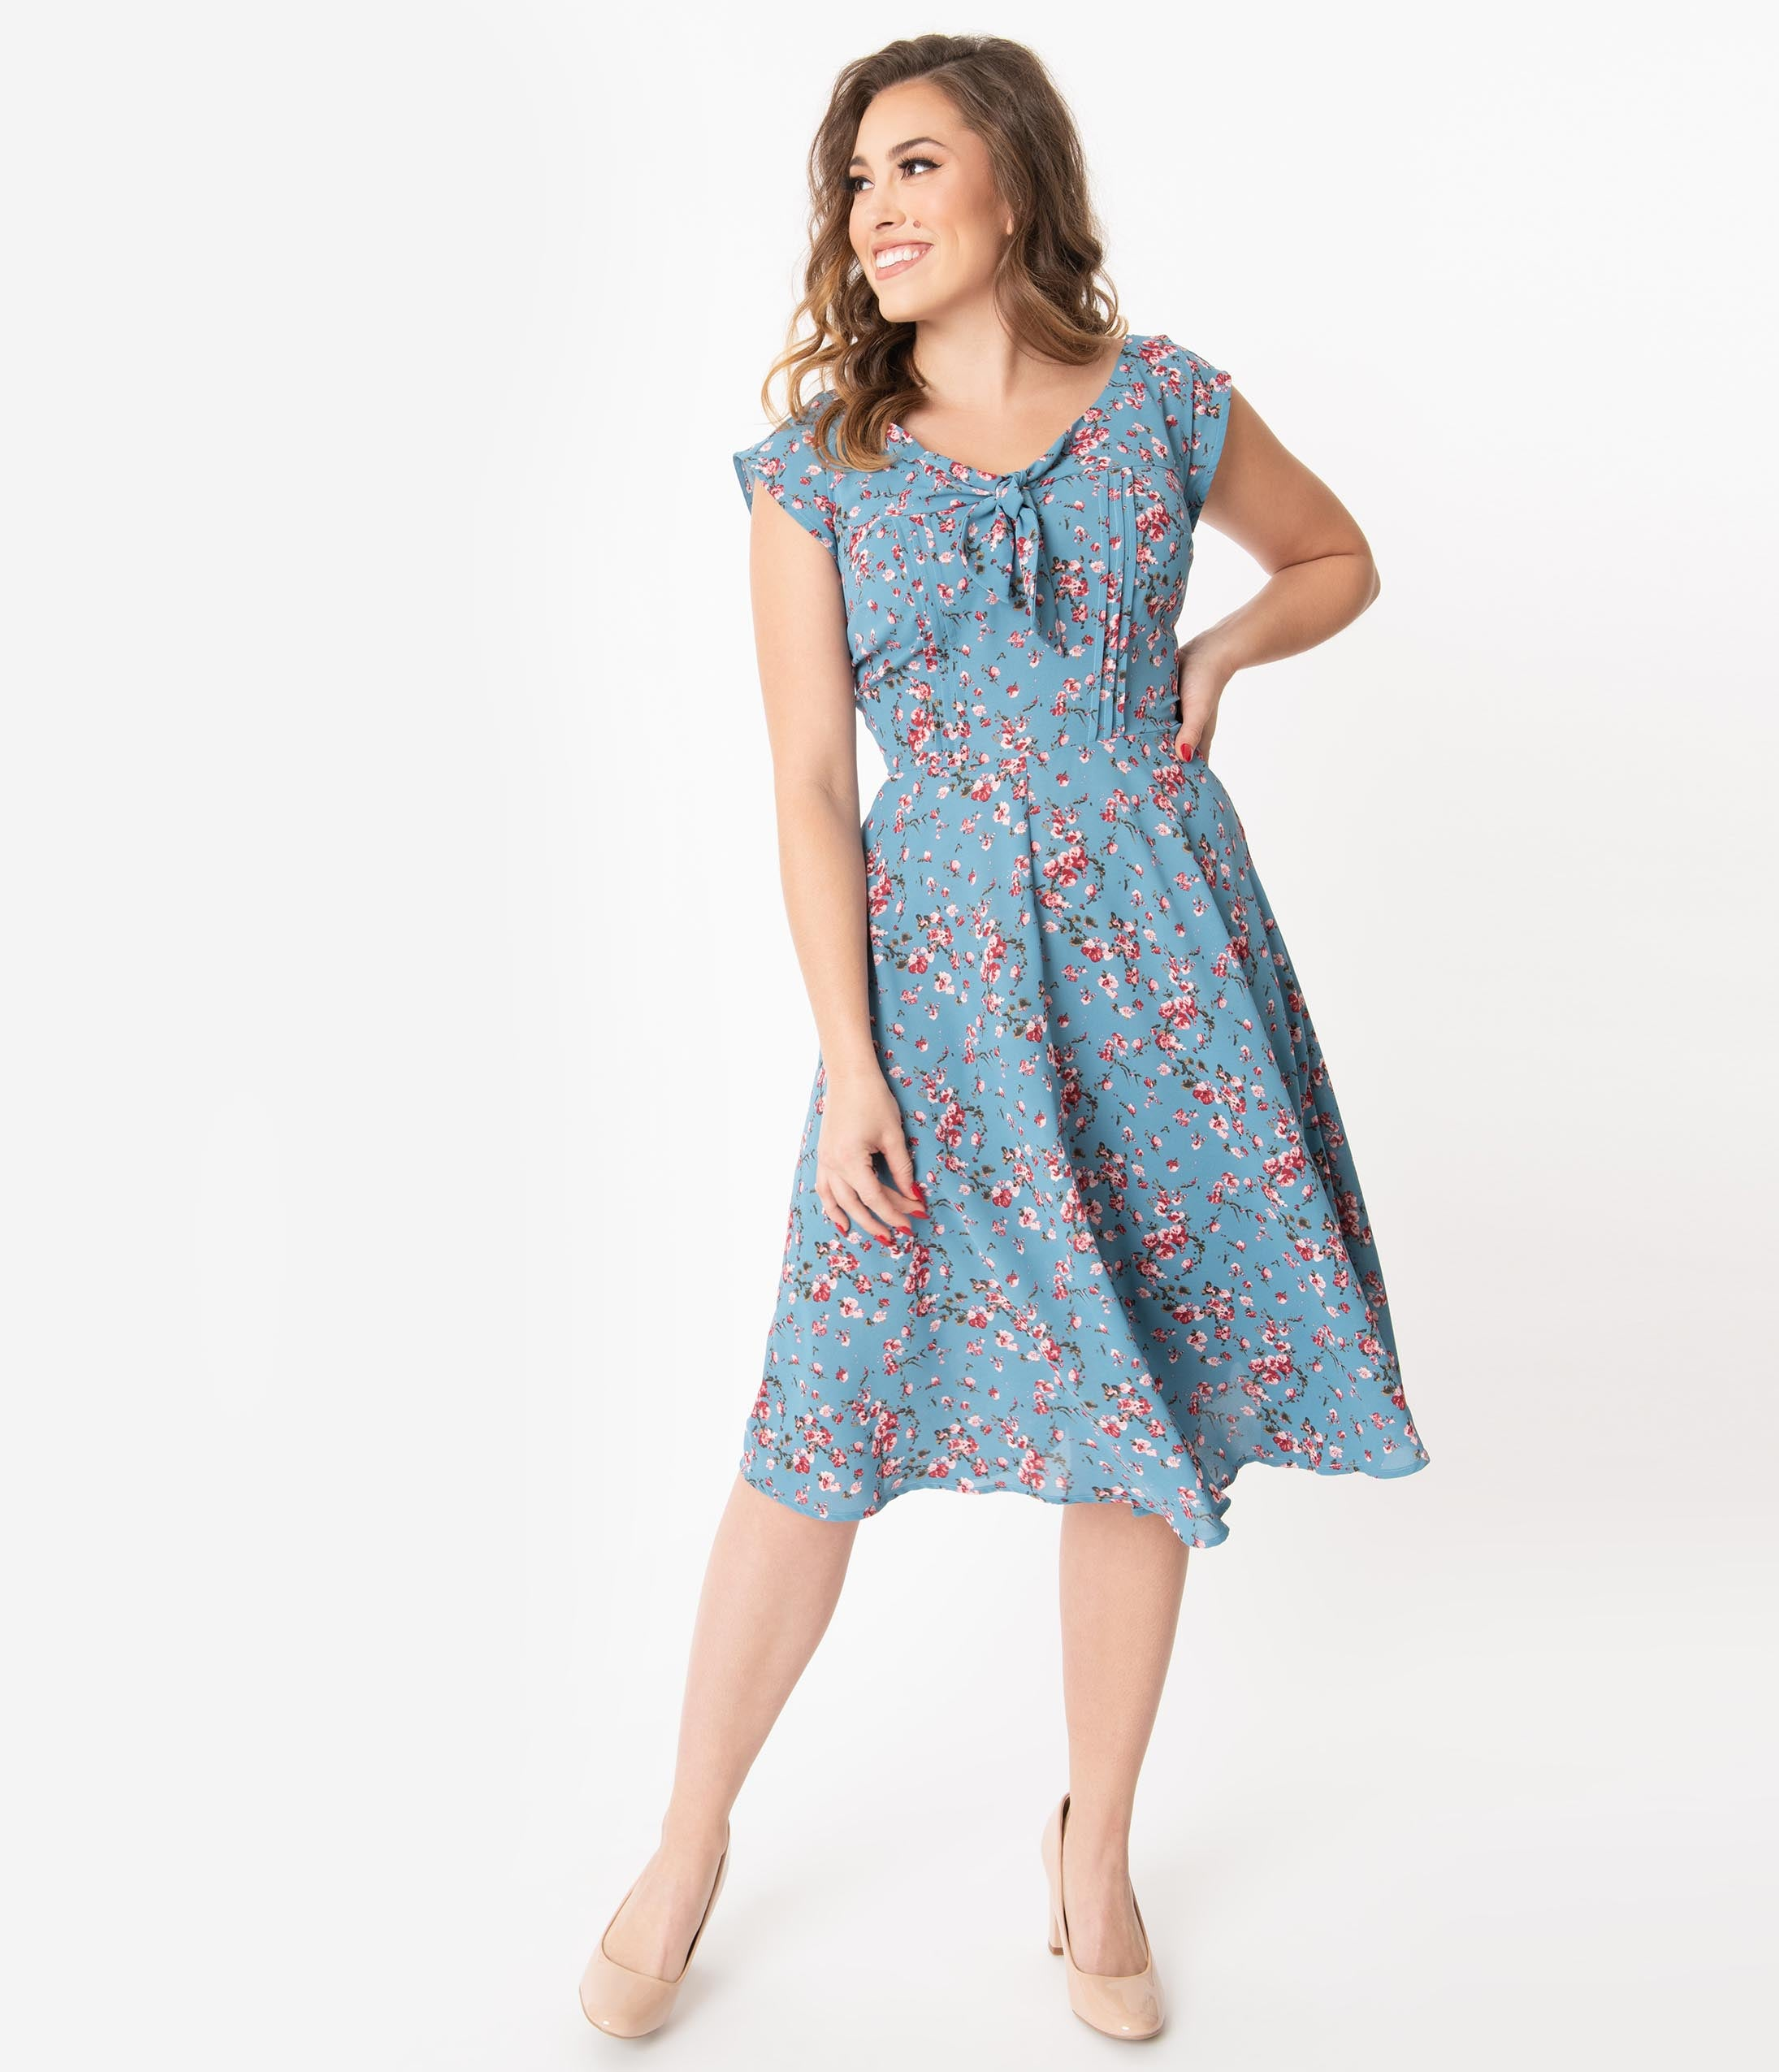 500 Vintage Style Dresses for Sale | Vintage Inspired Dresses Unique Vintage 1940S Chambray Blue  Pink Floral Print Havilland Dress $88.00 AT vintagedancer.com